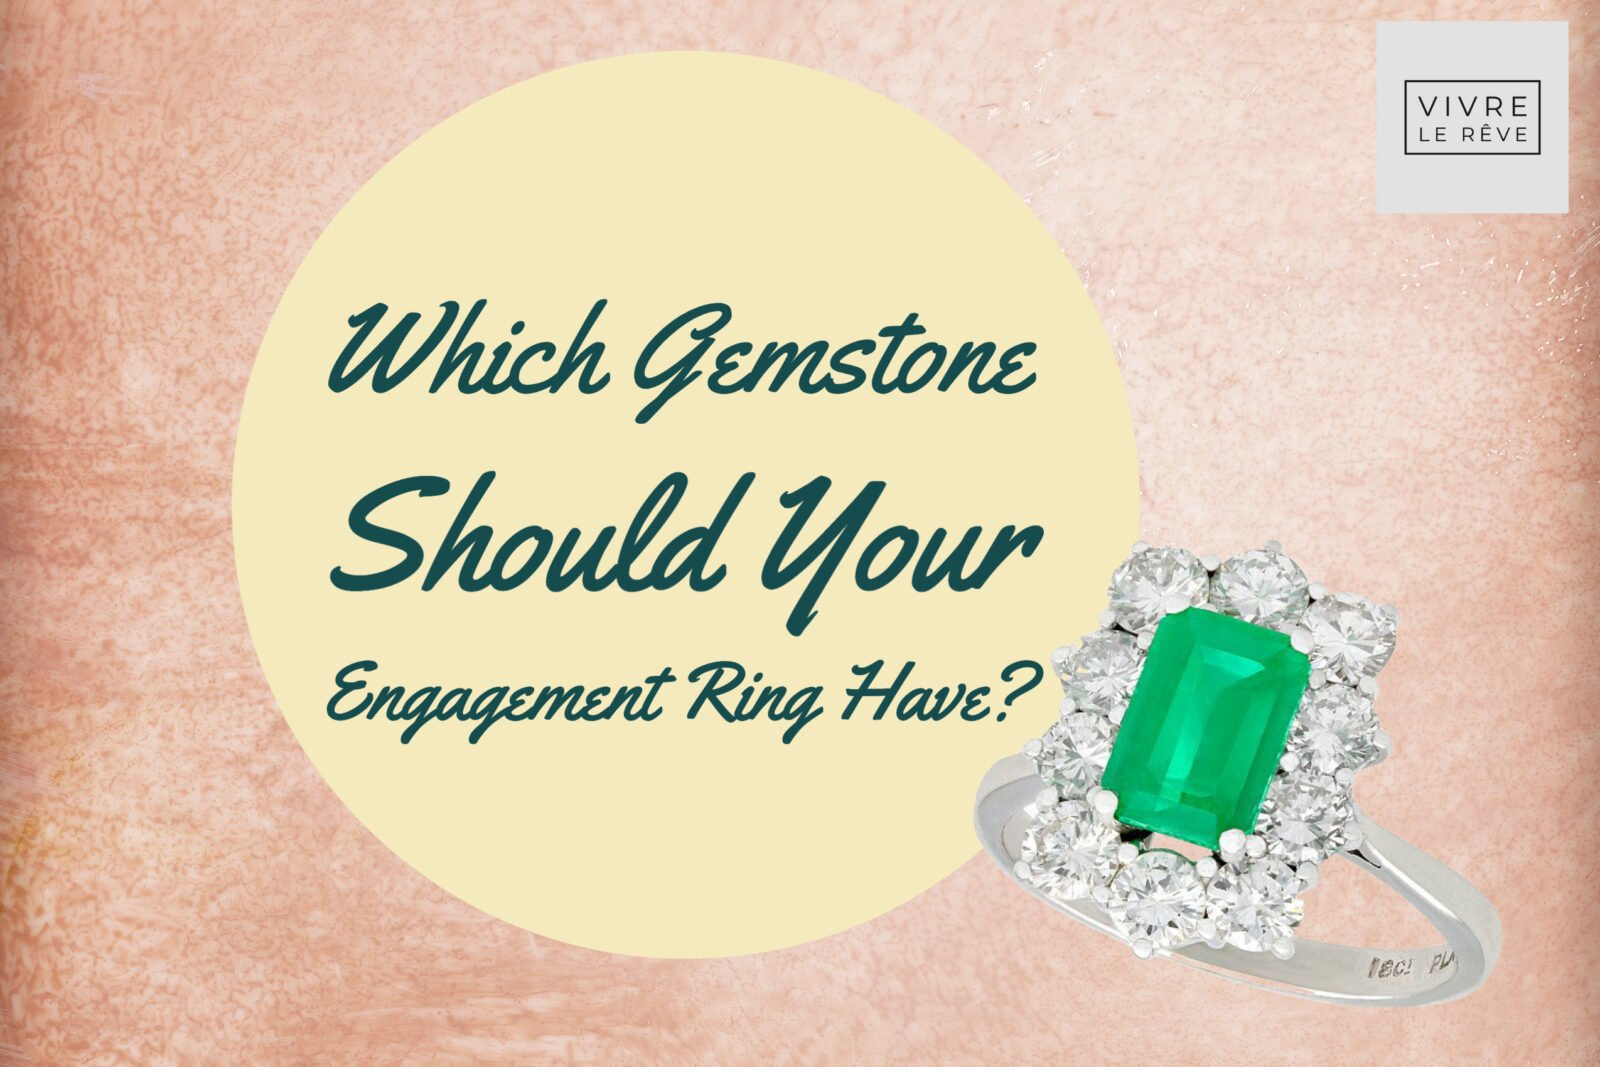 Which Gemstone Should Your Engagement Ring Have?